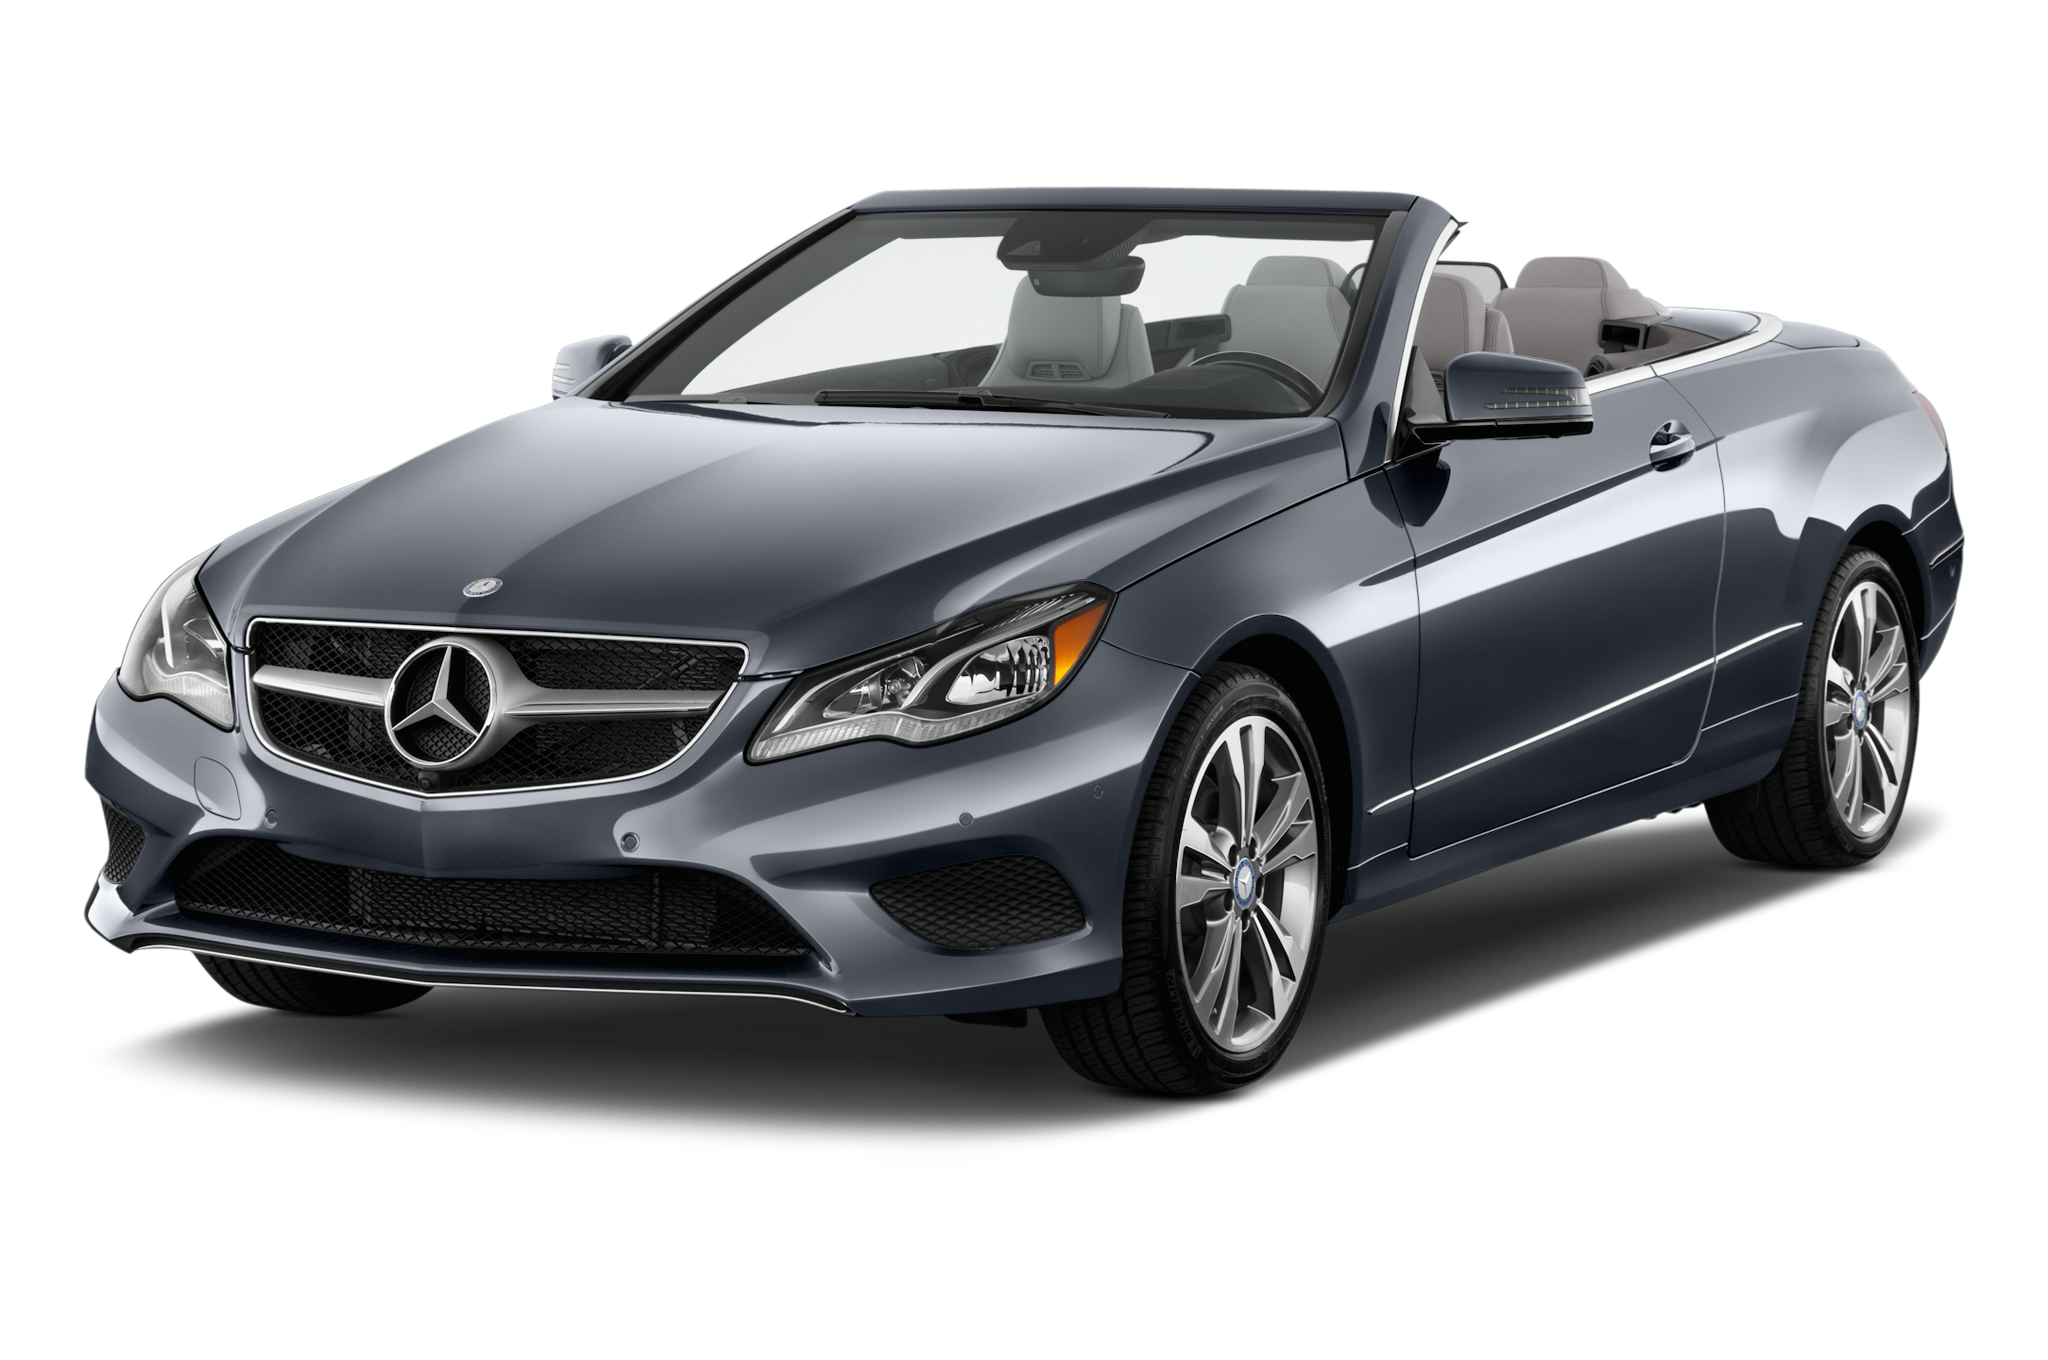 2017 mercedes ben e400 4matic wagon one week review automobile magazine. Black Bedroom Furniture Sets. Home Design Ideas